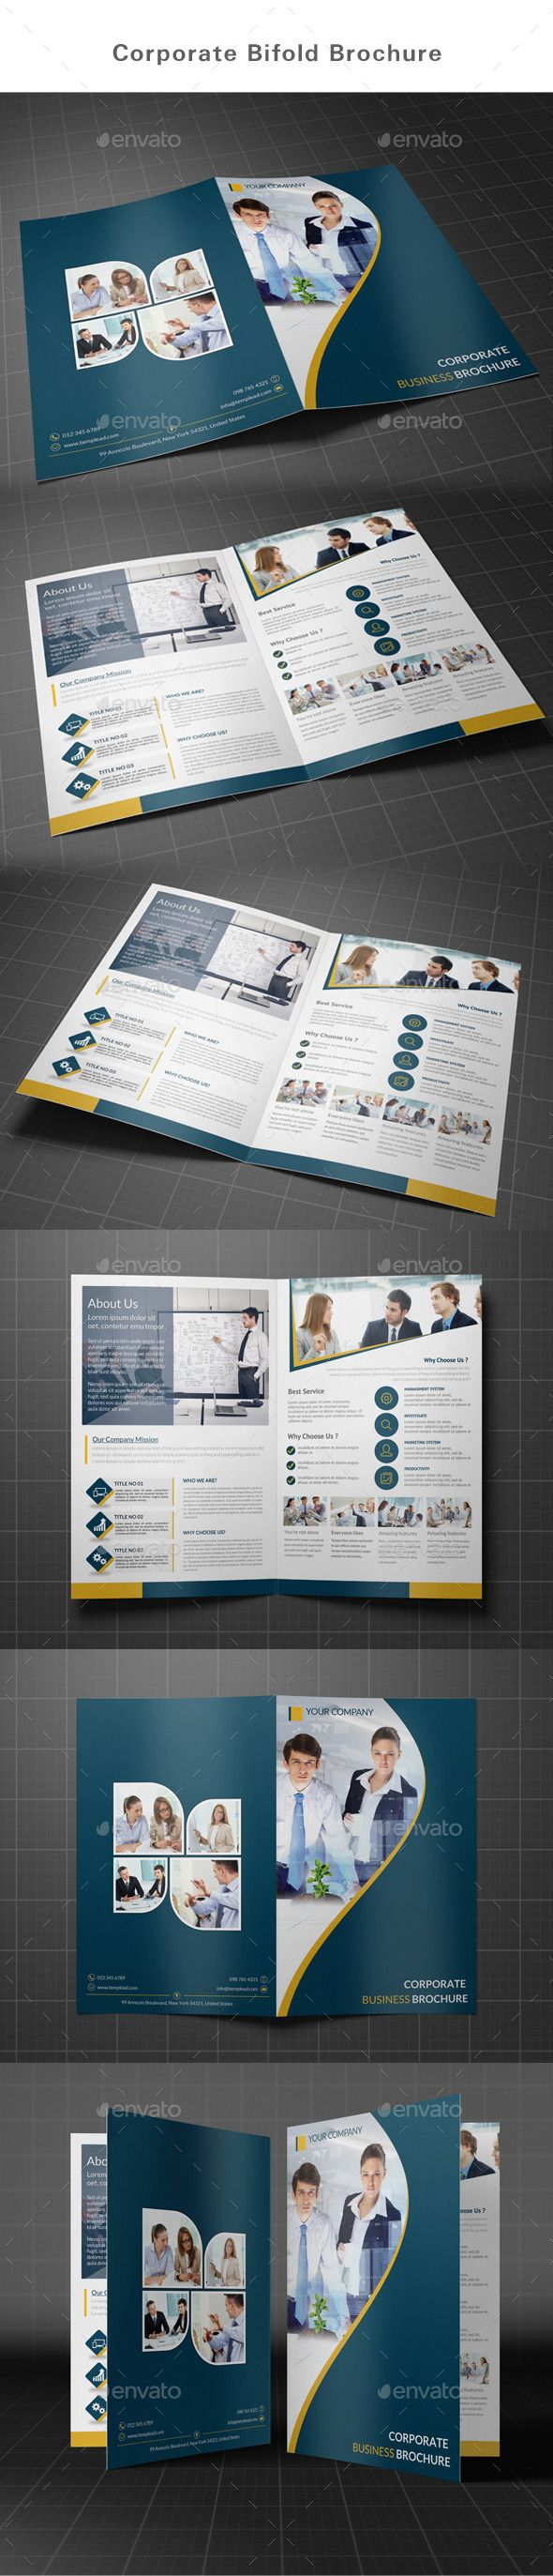 Business Bifold Brochure Tempalte #design Download: http://graphicriver.net/item/bifold-brochure-business/12926348?ref=ksioks